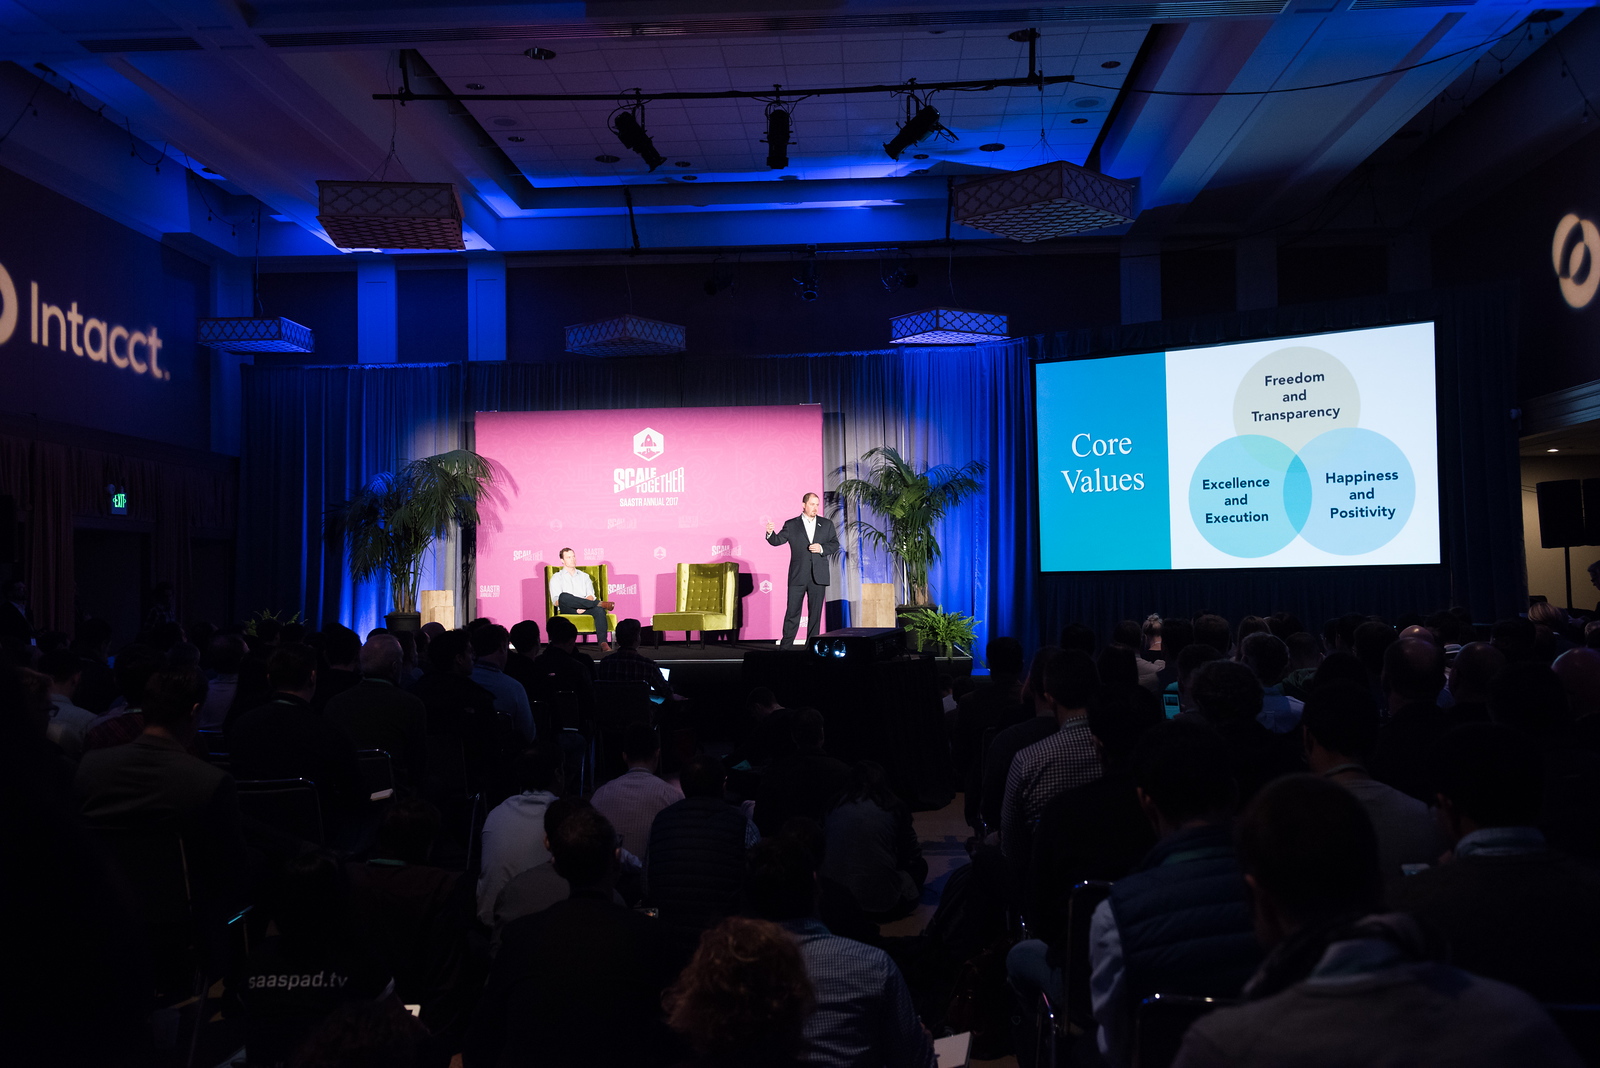 After Marketo: 10 Things I'm Doing Even Better The Second Time Doug Pepper MANAGING DIRECTOR / SHASTA VENTURES  Jon Miller CO-FOUNDER & CEO / ENGAGIO